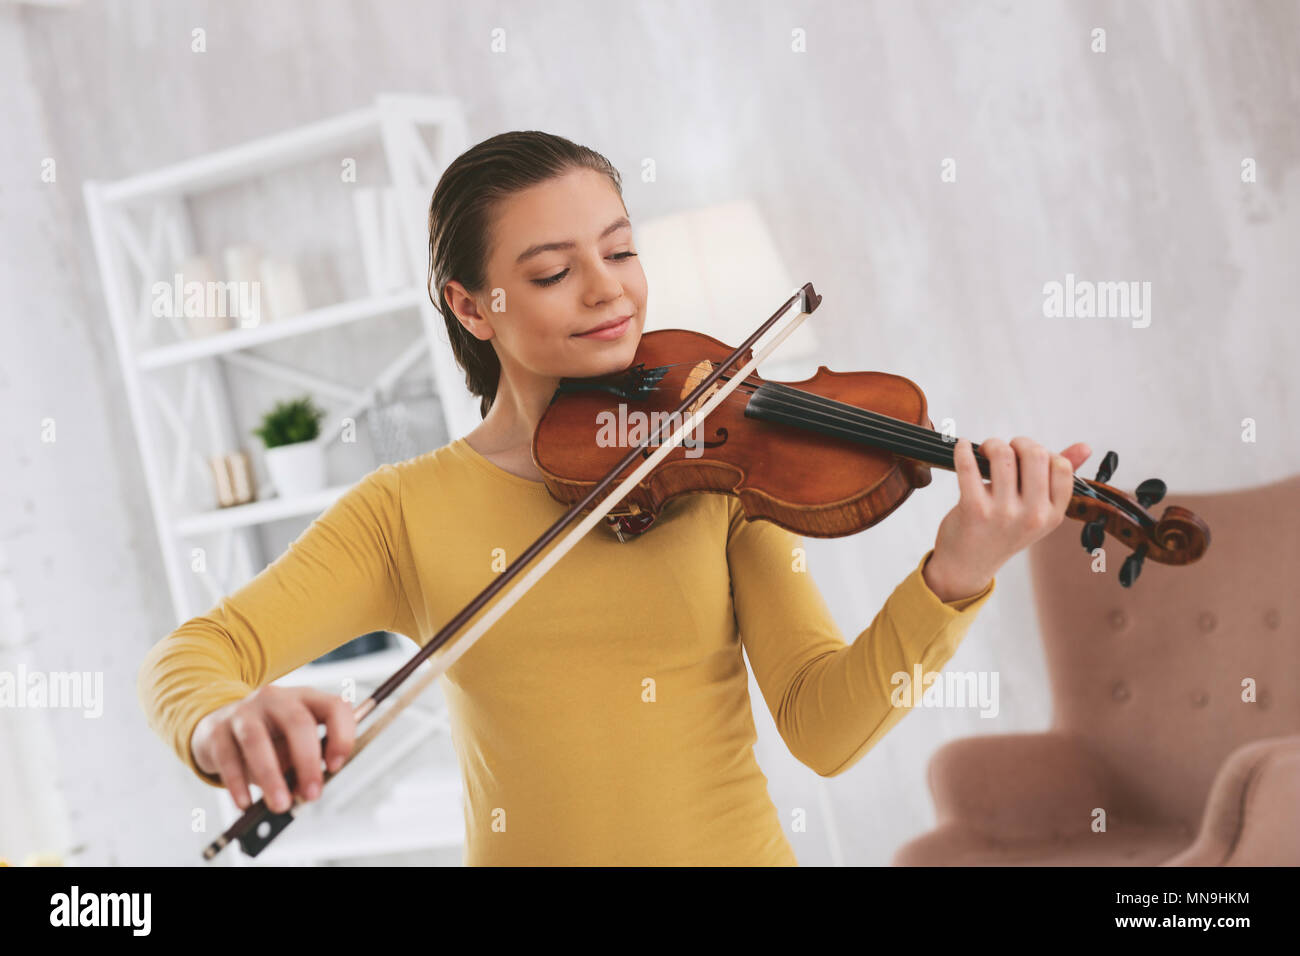 Attentive musician looking at strings - Stock Image